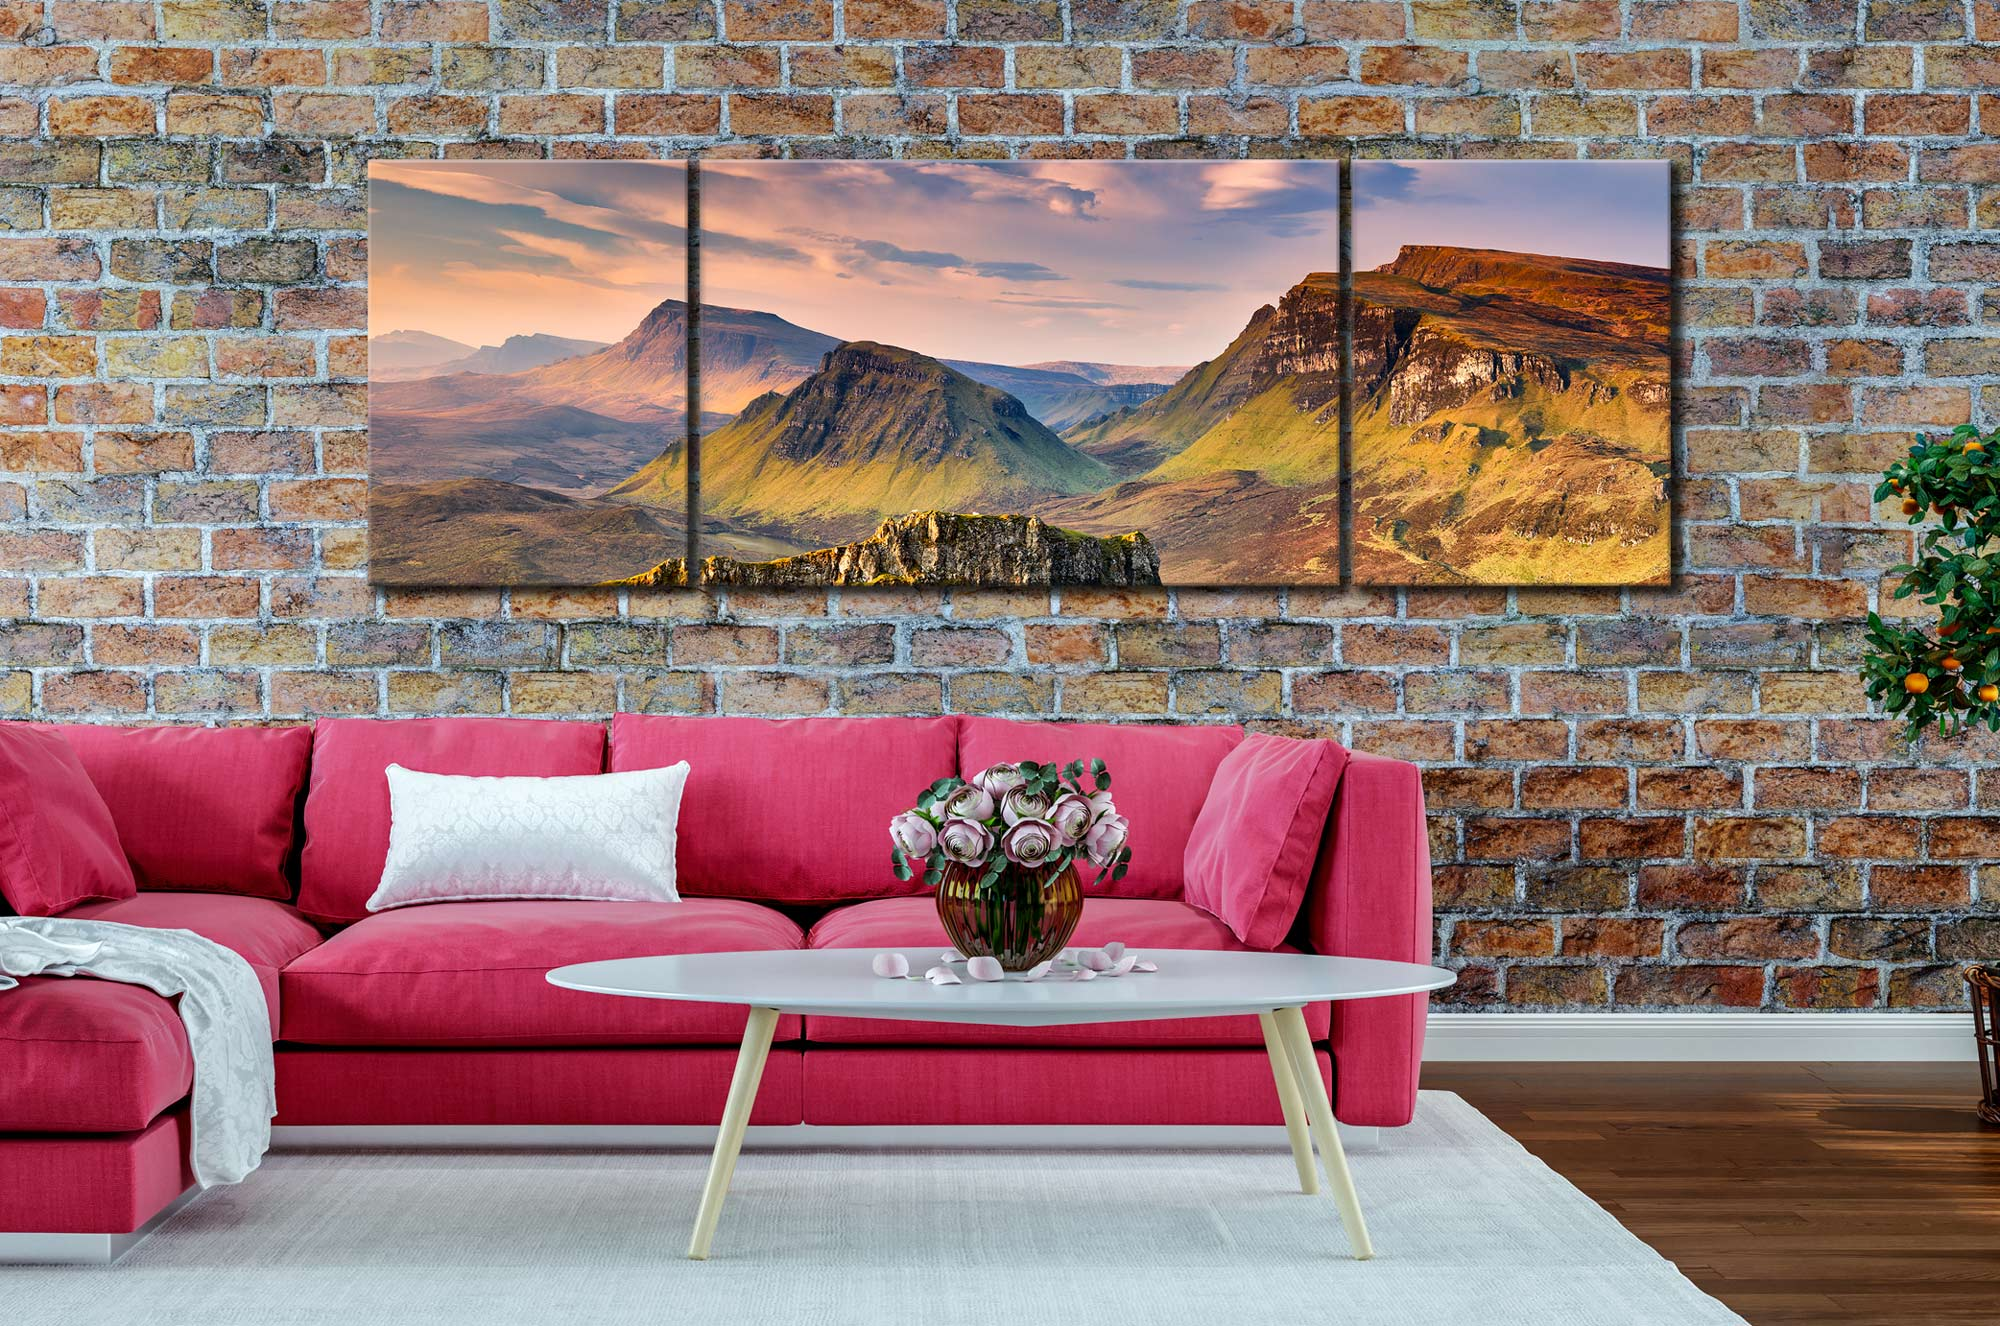 Trotternish Mountains Isle of Skye - 3 Panel Wide Centre Canvas on Wall